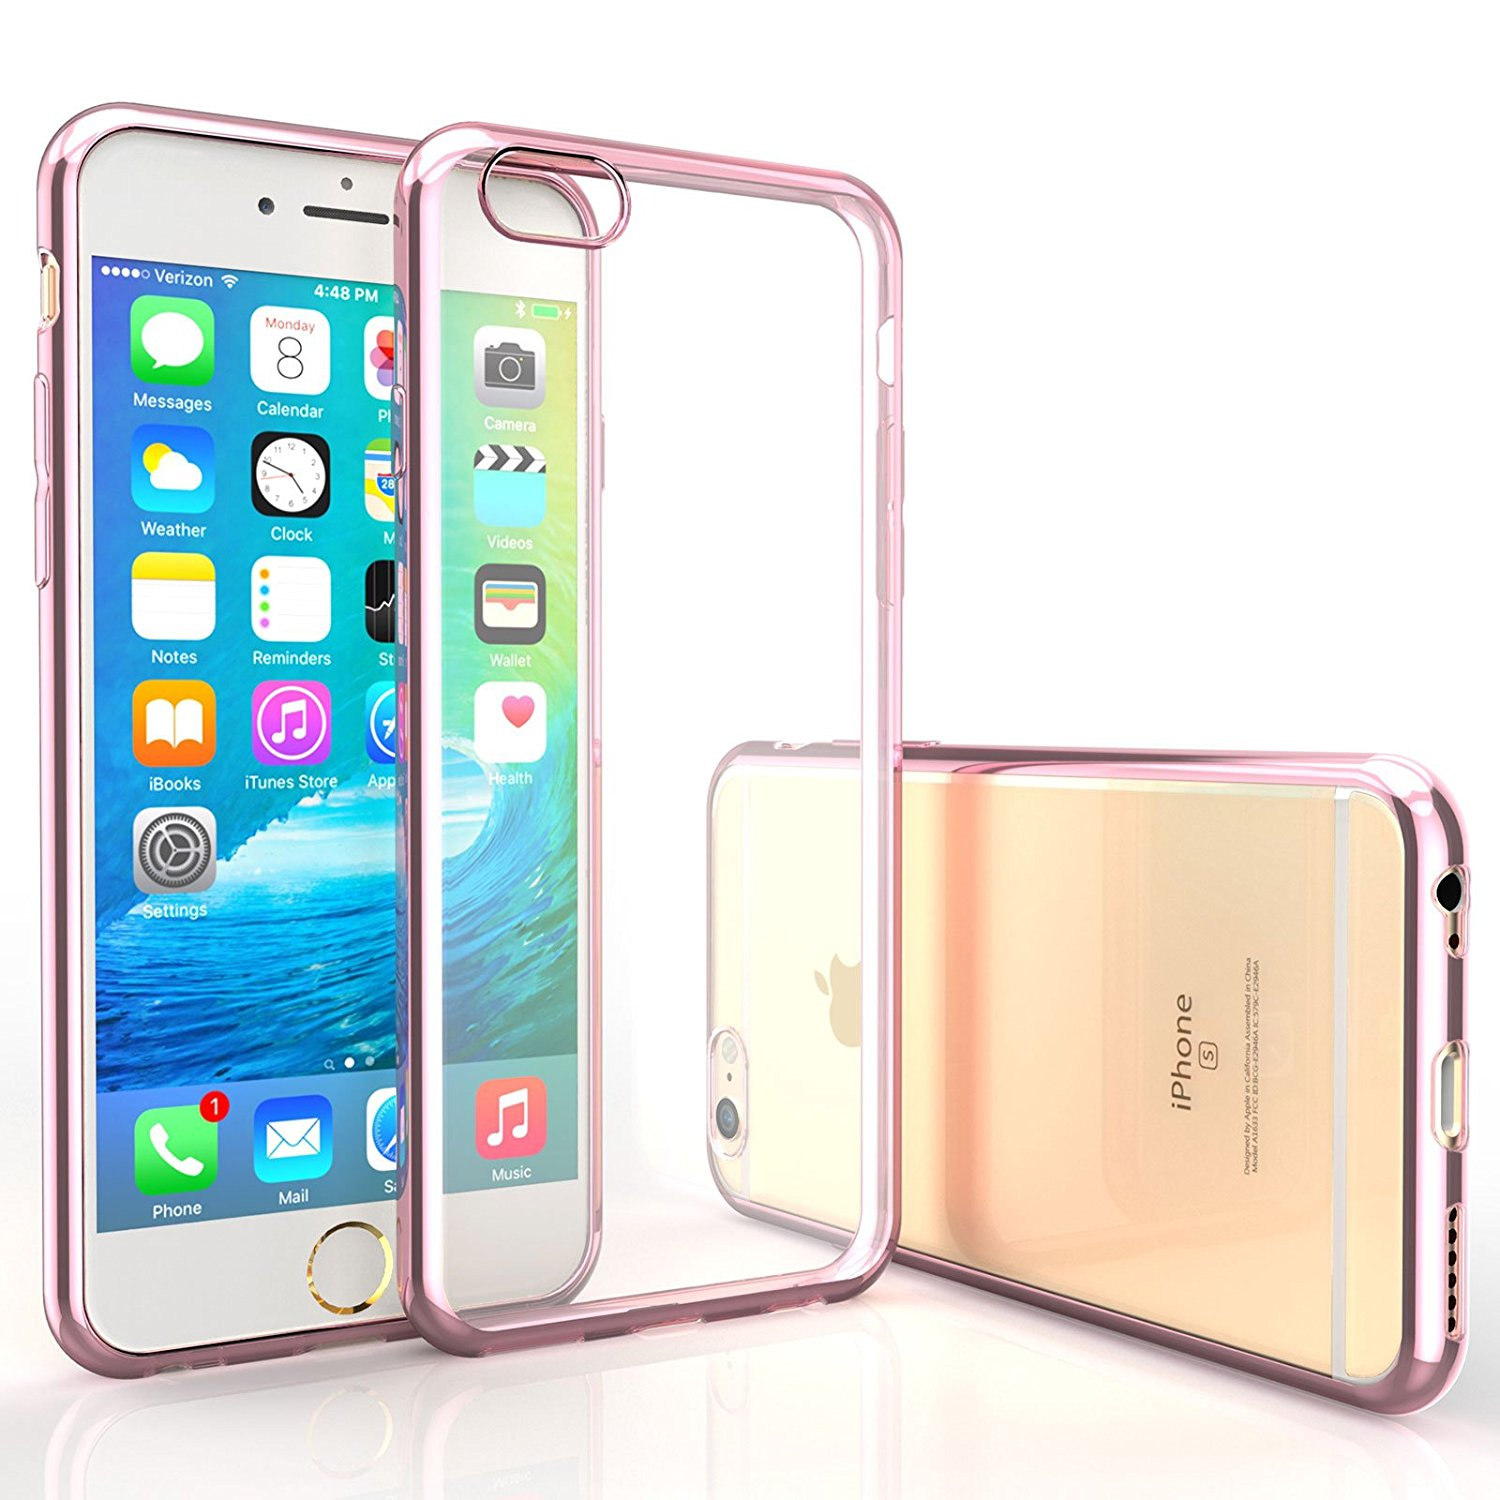 quality design d2f2f 517c3 iPhone 7 Case Ultra Thin Electroplate TPU Gel Cover with Shock-Proof ...